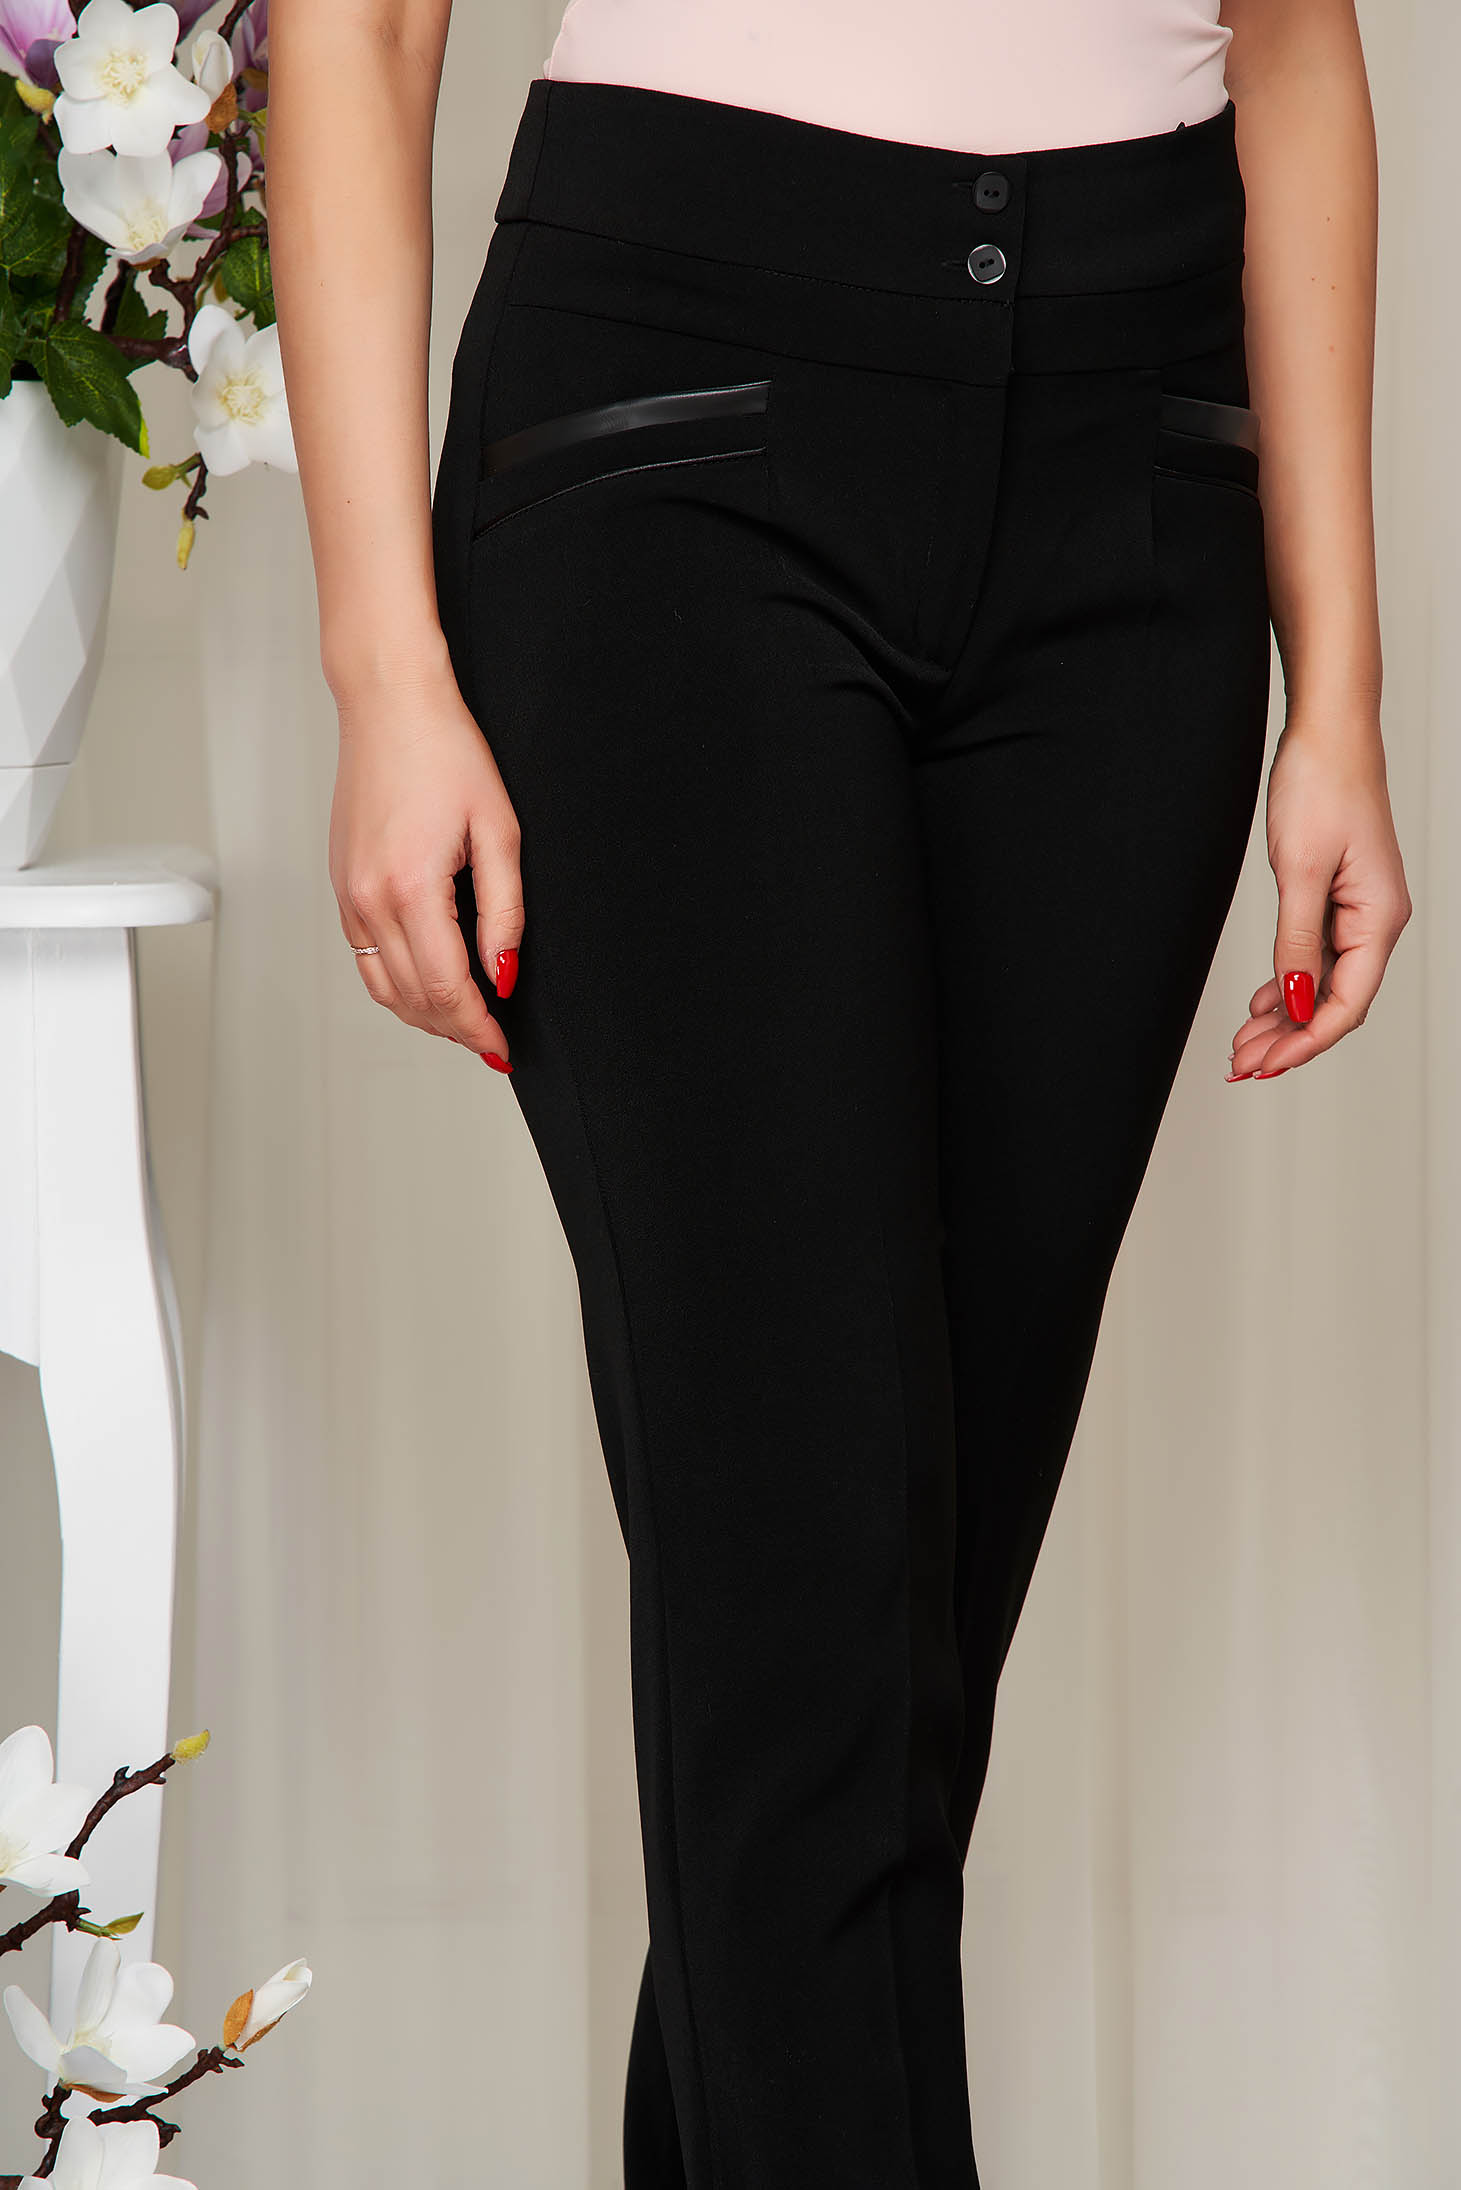 Black trousers conical high waisted cloth